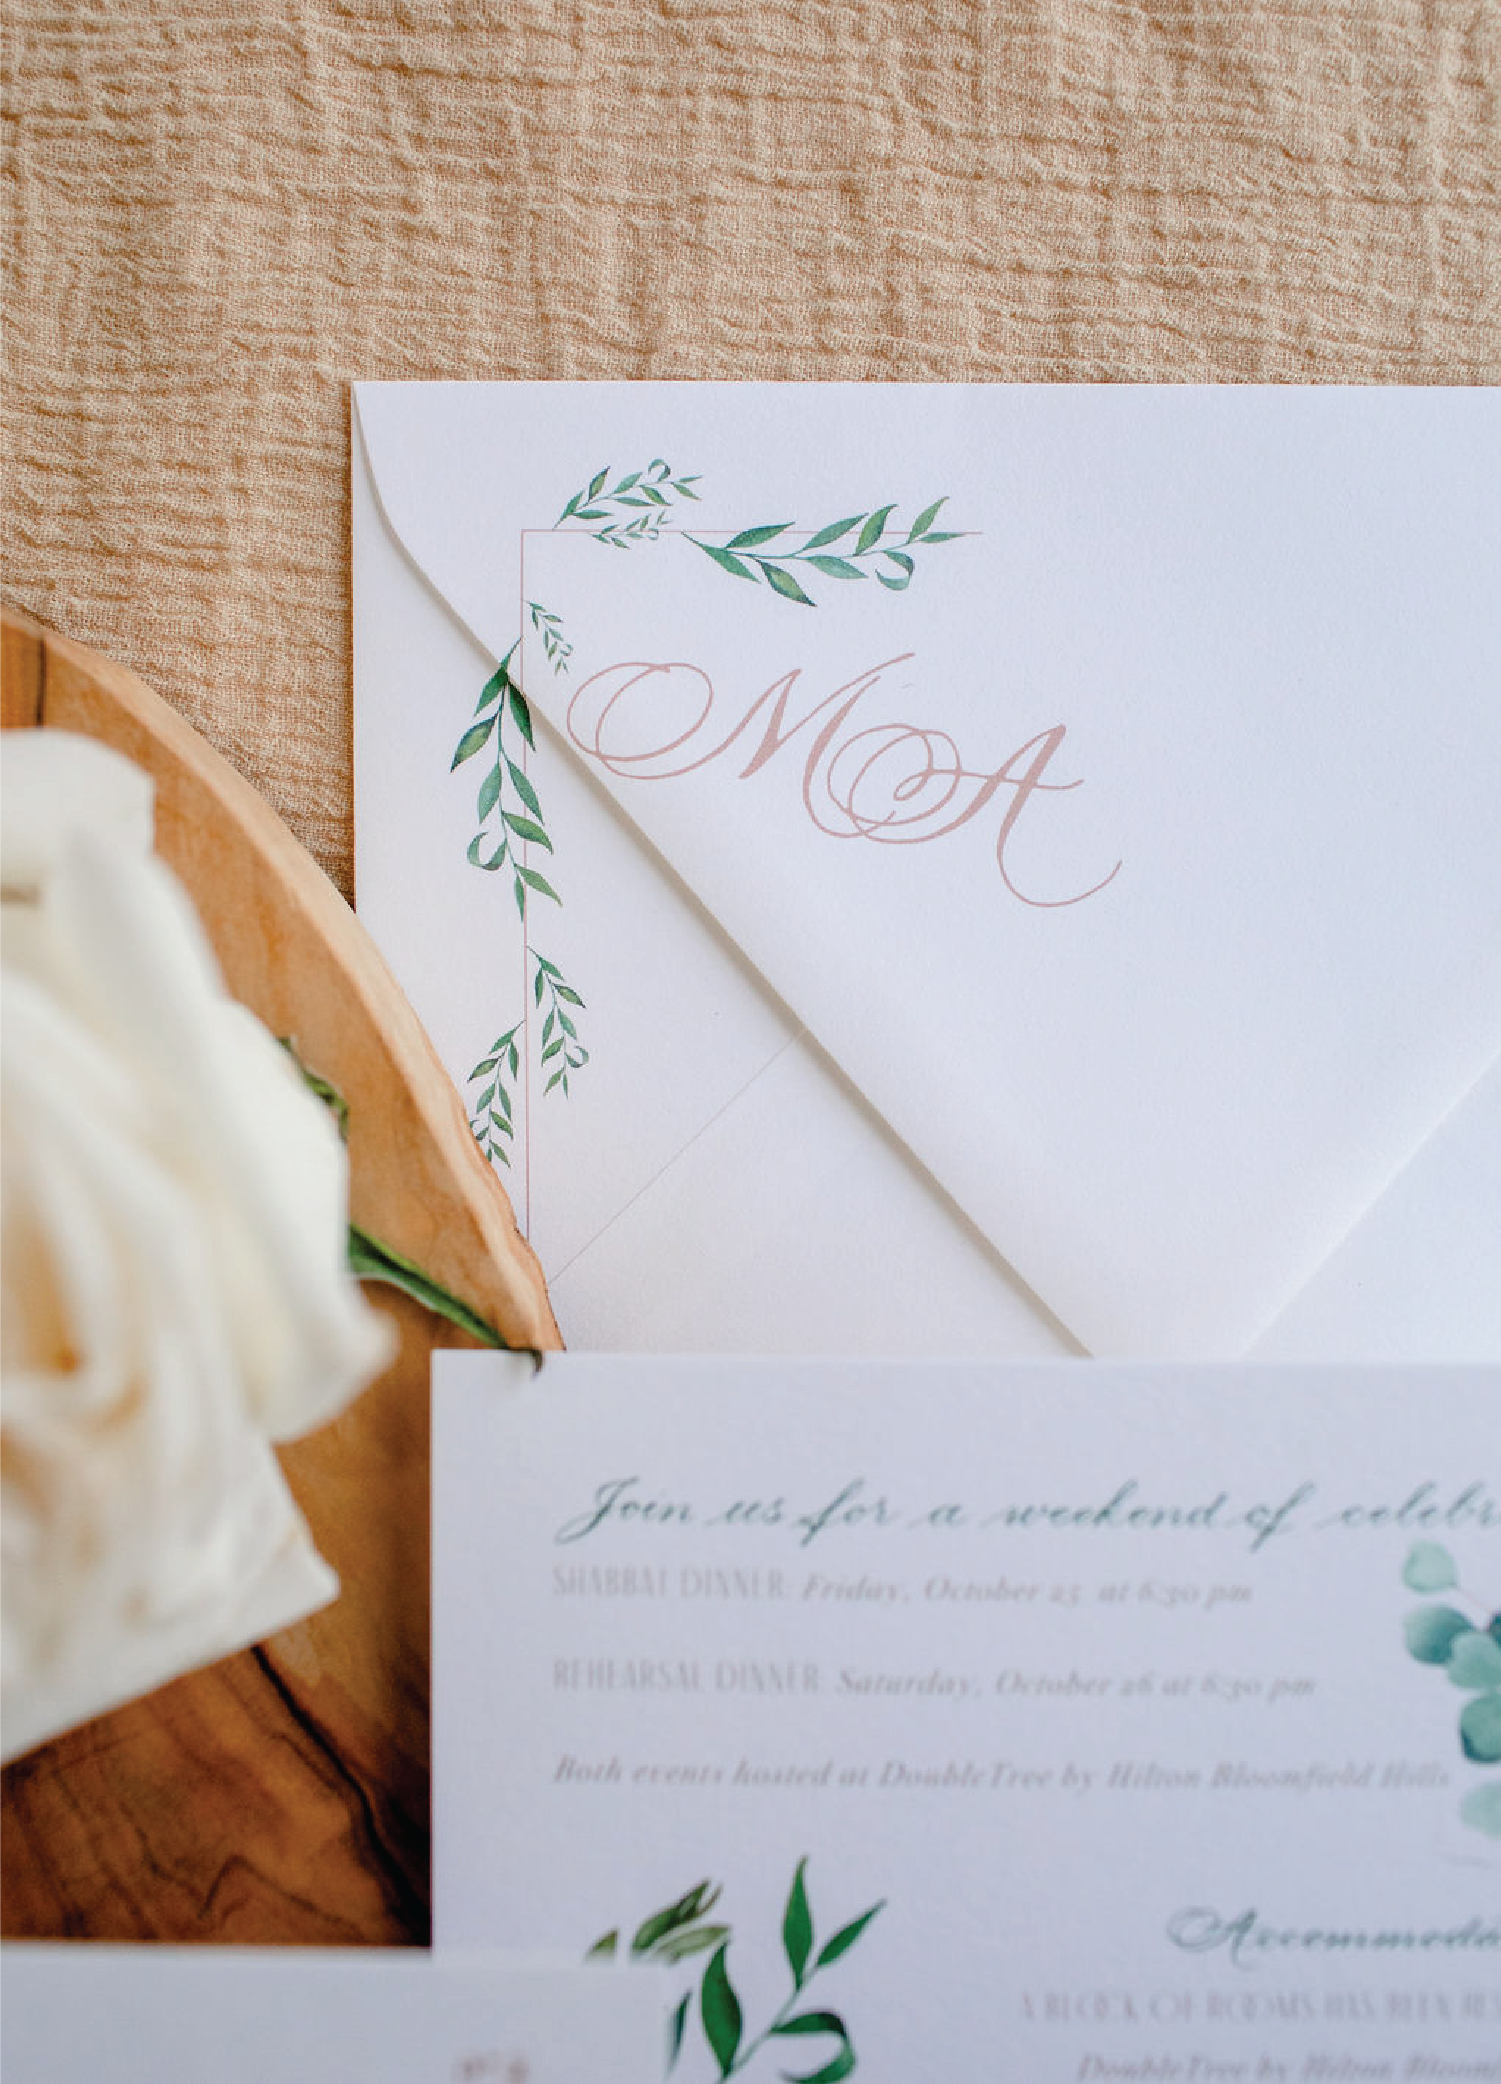 Envelope detail on wedding invitations with calligraphy by Leah E. Moss Designs